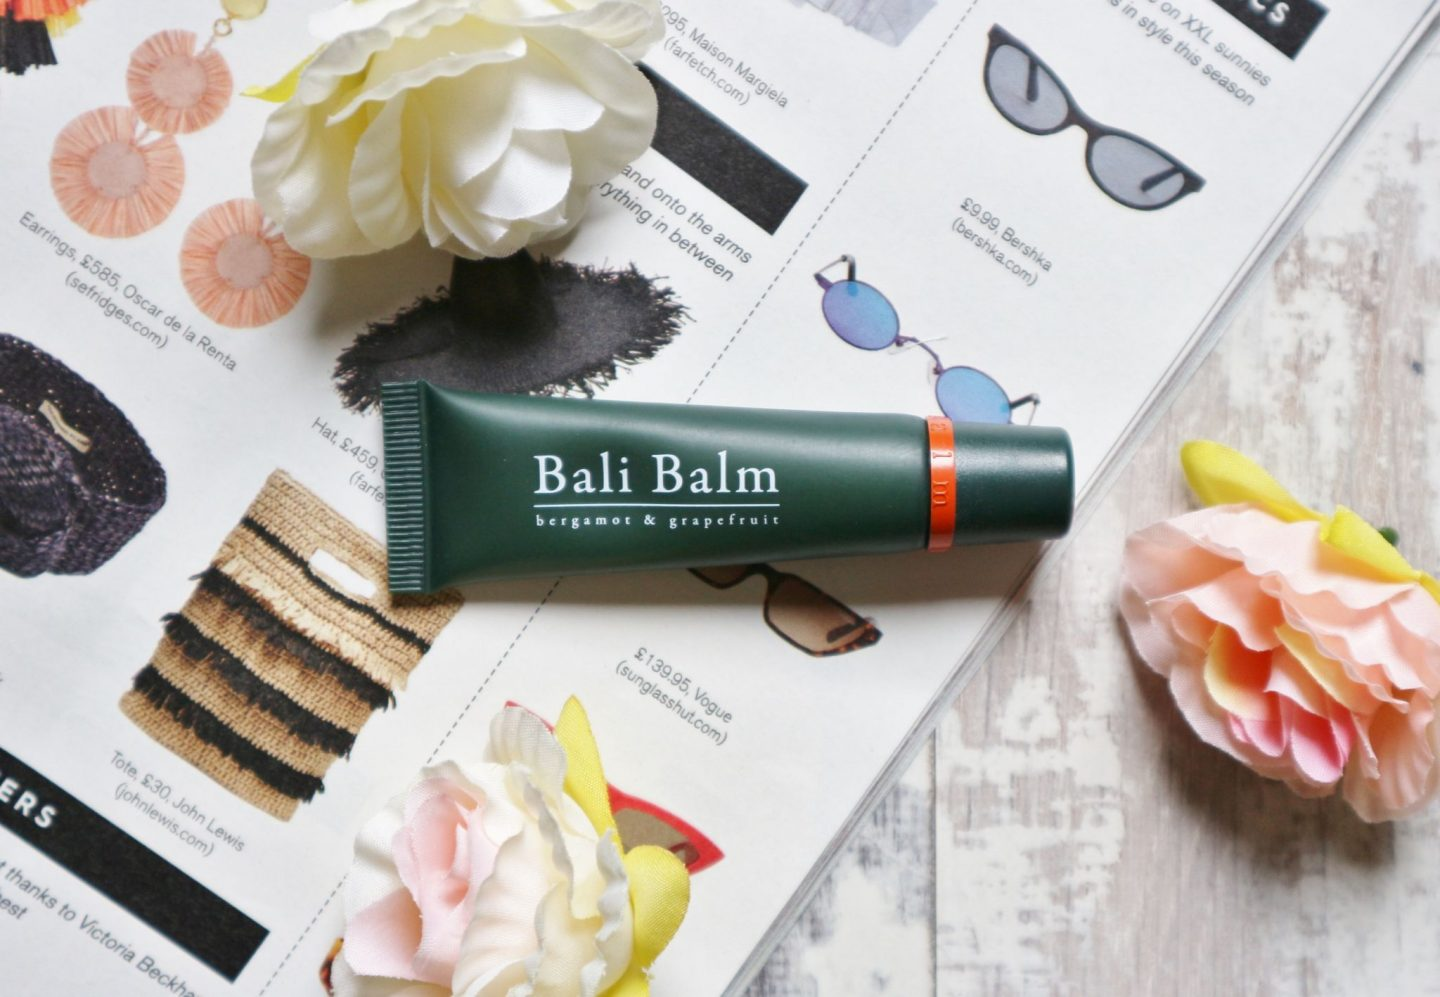 Bali Balm in Bergamot and Grapefruit